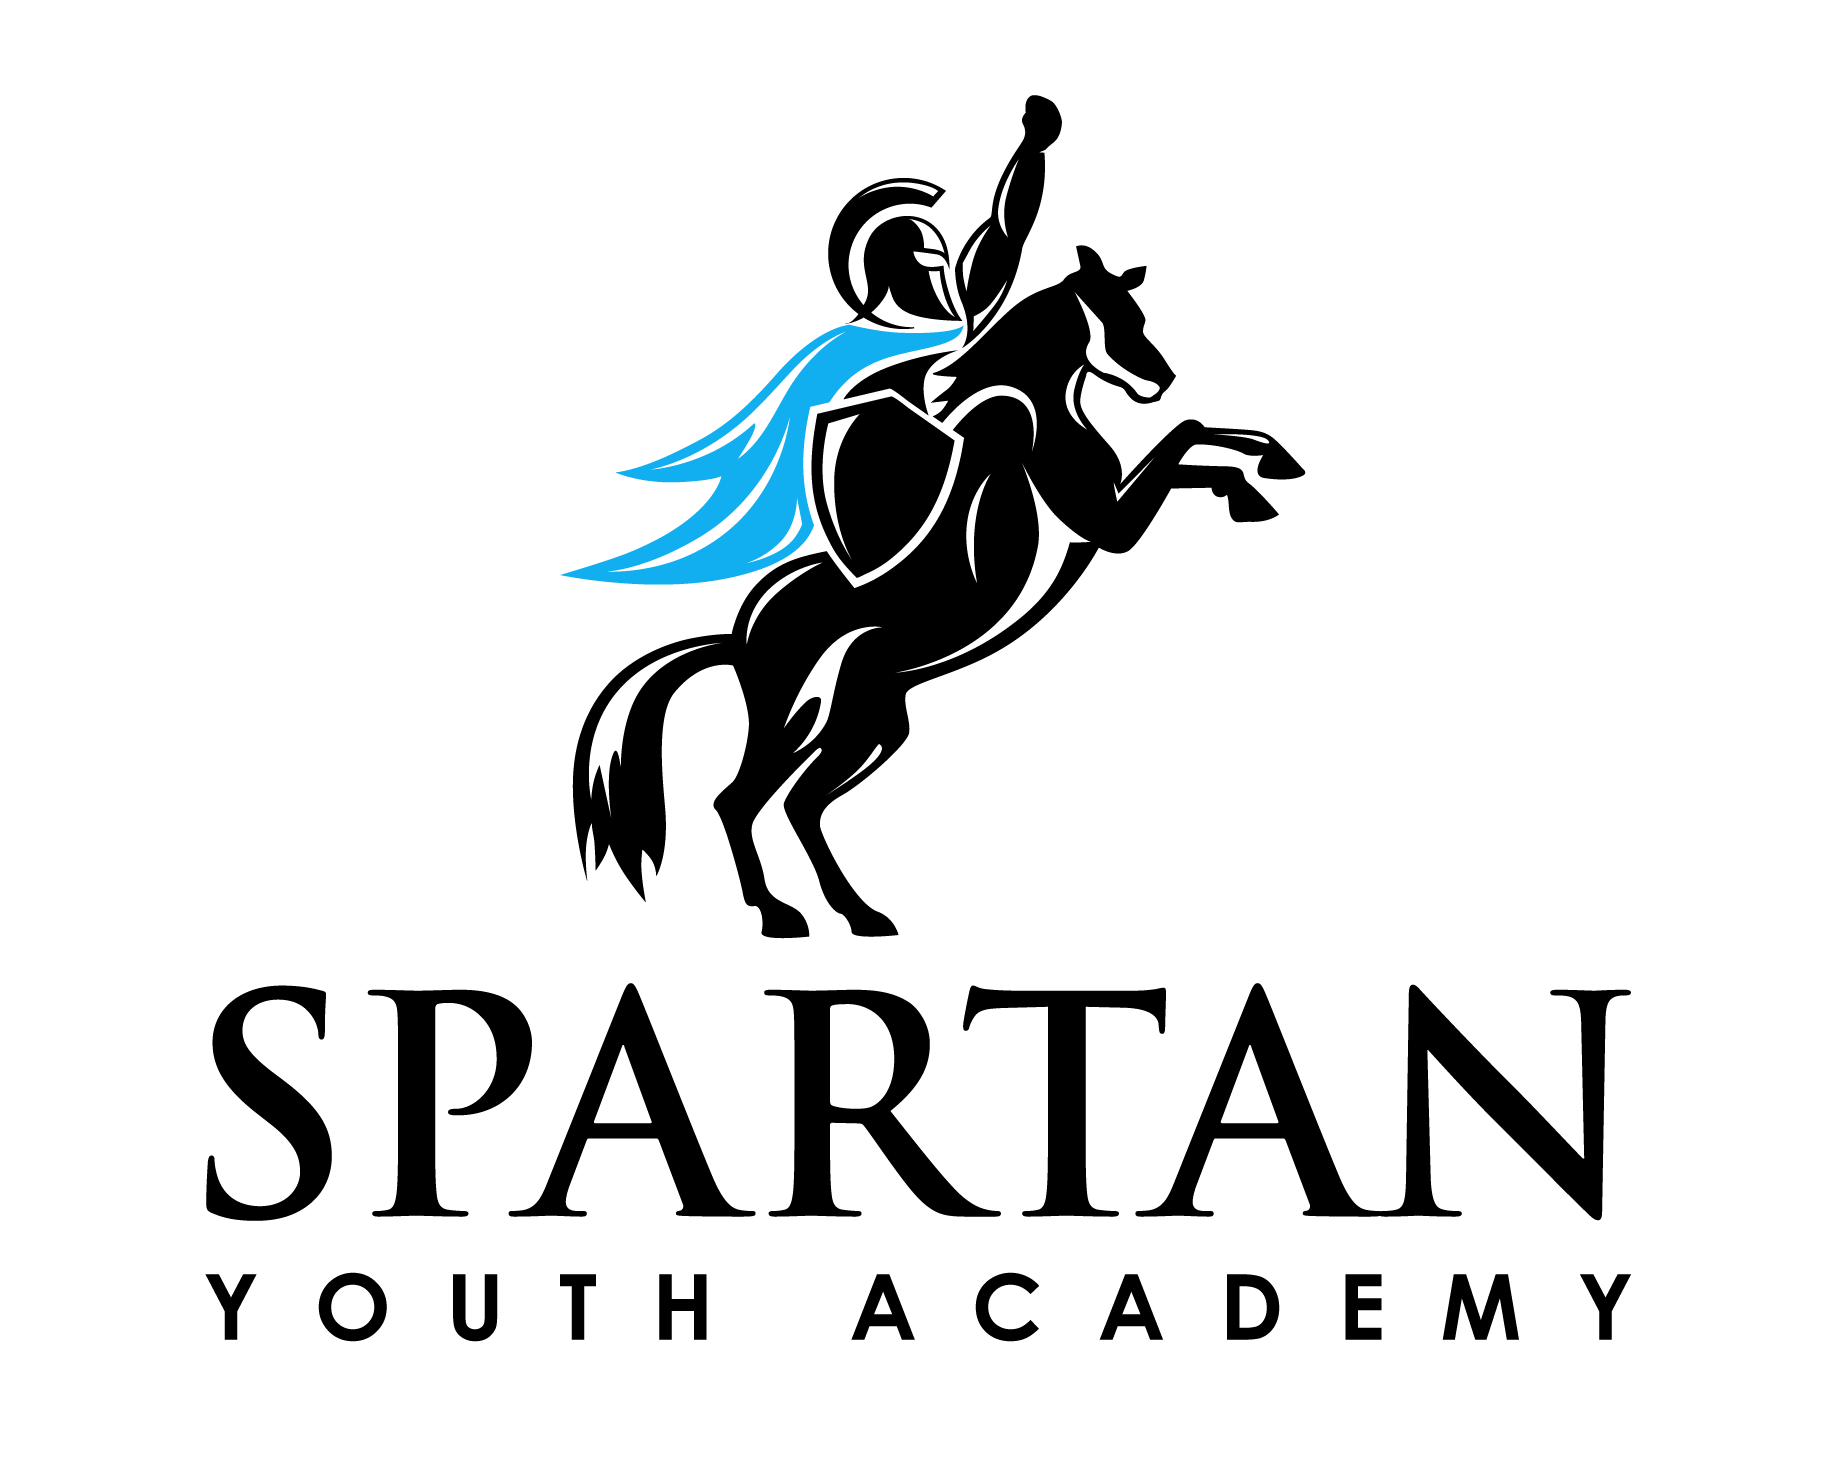 Spartan Youth Academy Crisis Consultant Group, LLC